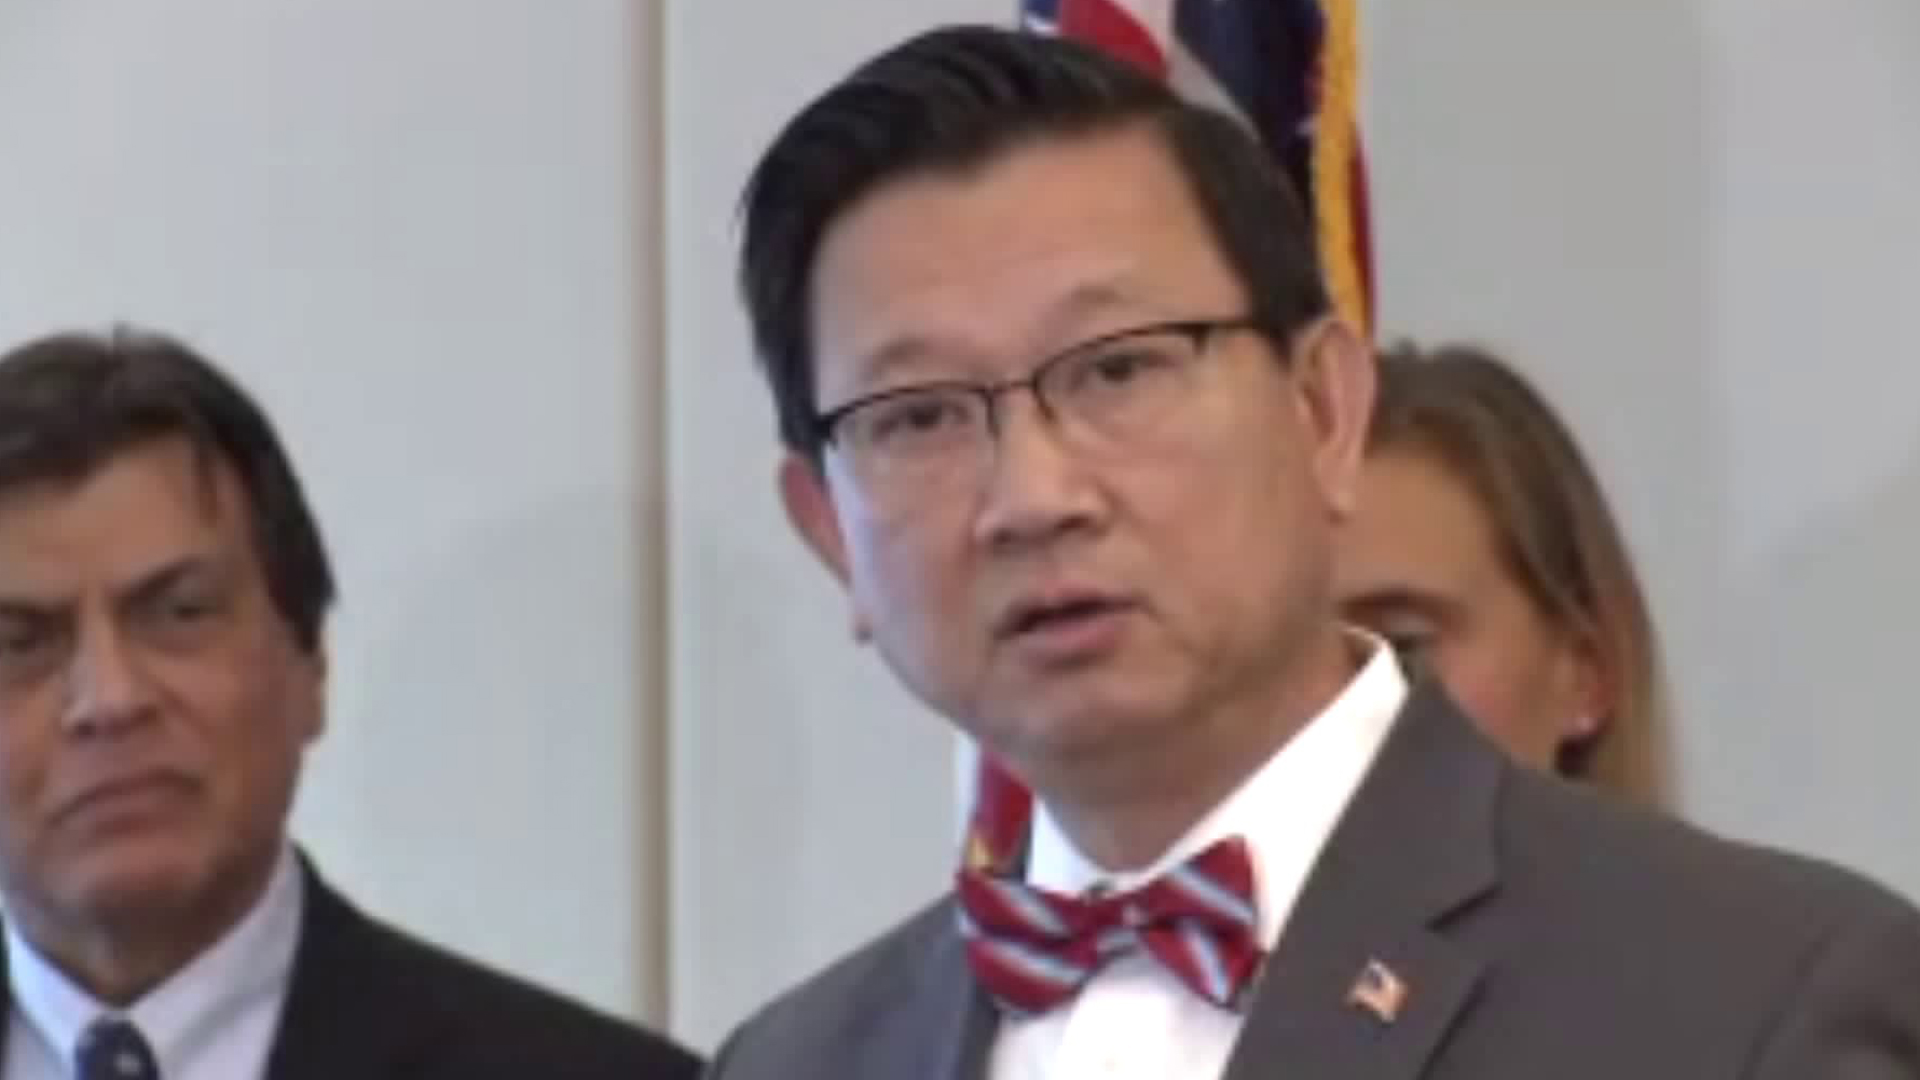 Orange County Supervisor Andrew Do speaks to reporters on Feb. 26, 2020, in Santa Ana, about the county declaring a local emergency over the coronavirus. (KTLA)